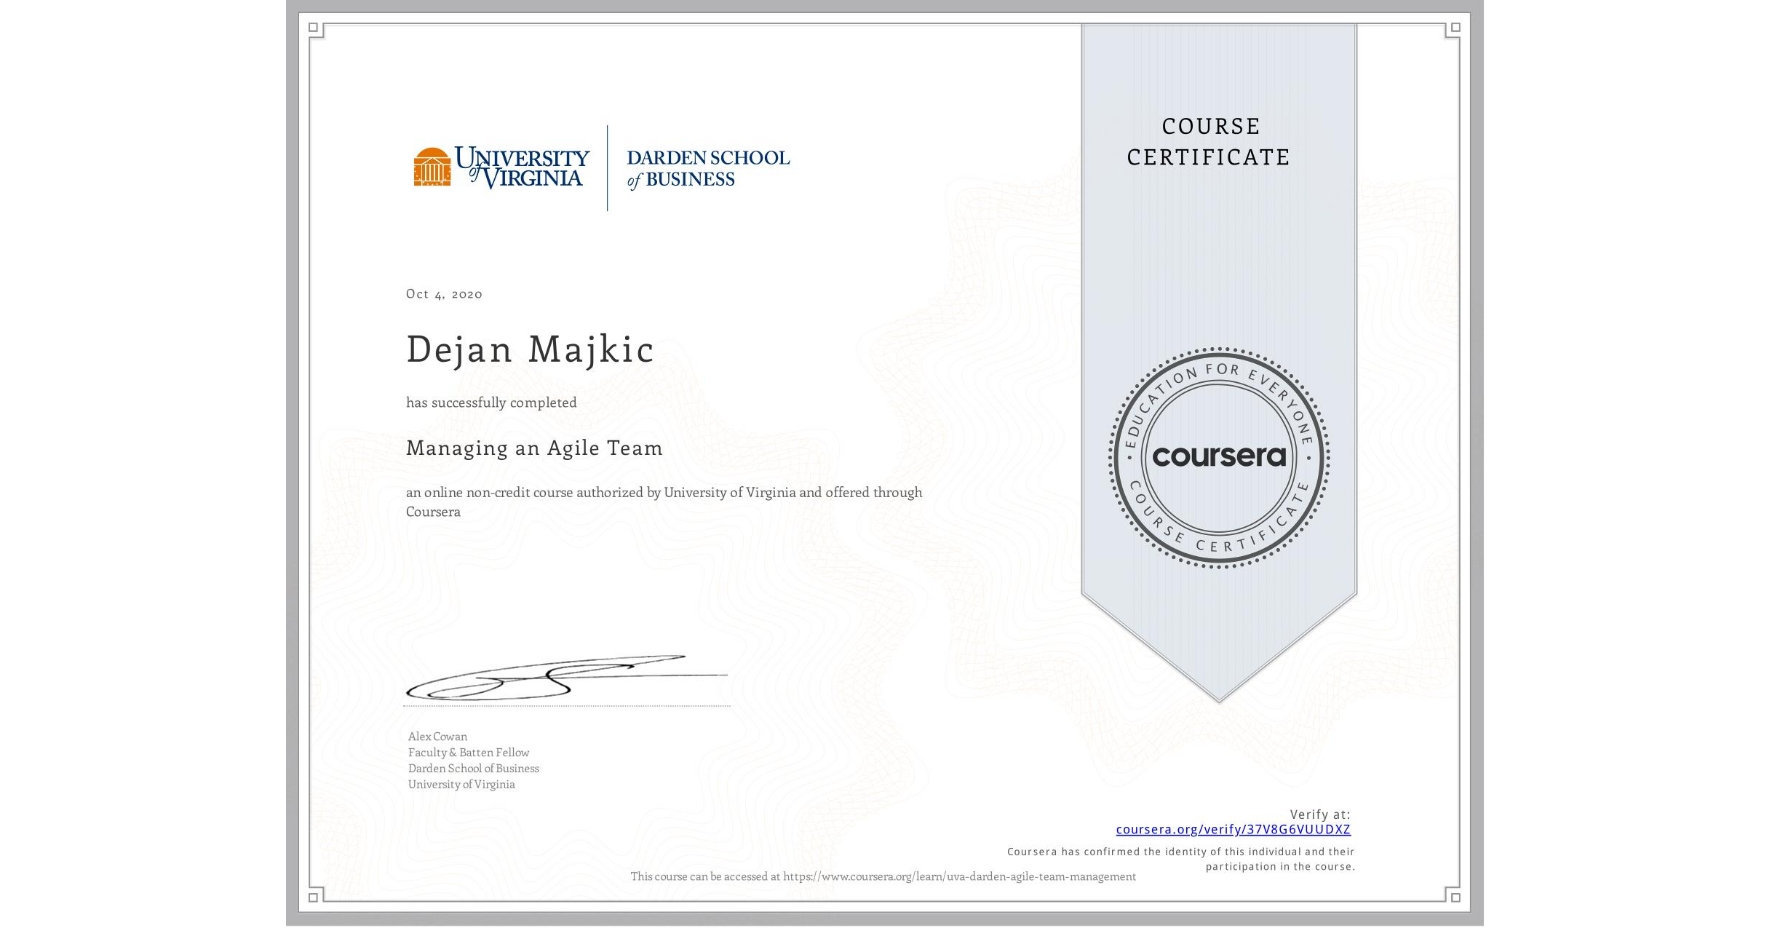 View certificate for Dejan Majkic, Managing an Agile Team, an online non-credit course authorized by University of Virginia and offered through Coursera